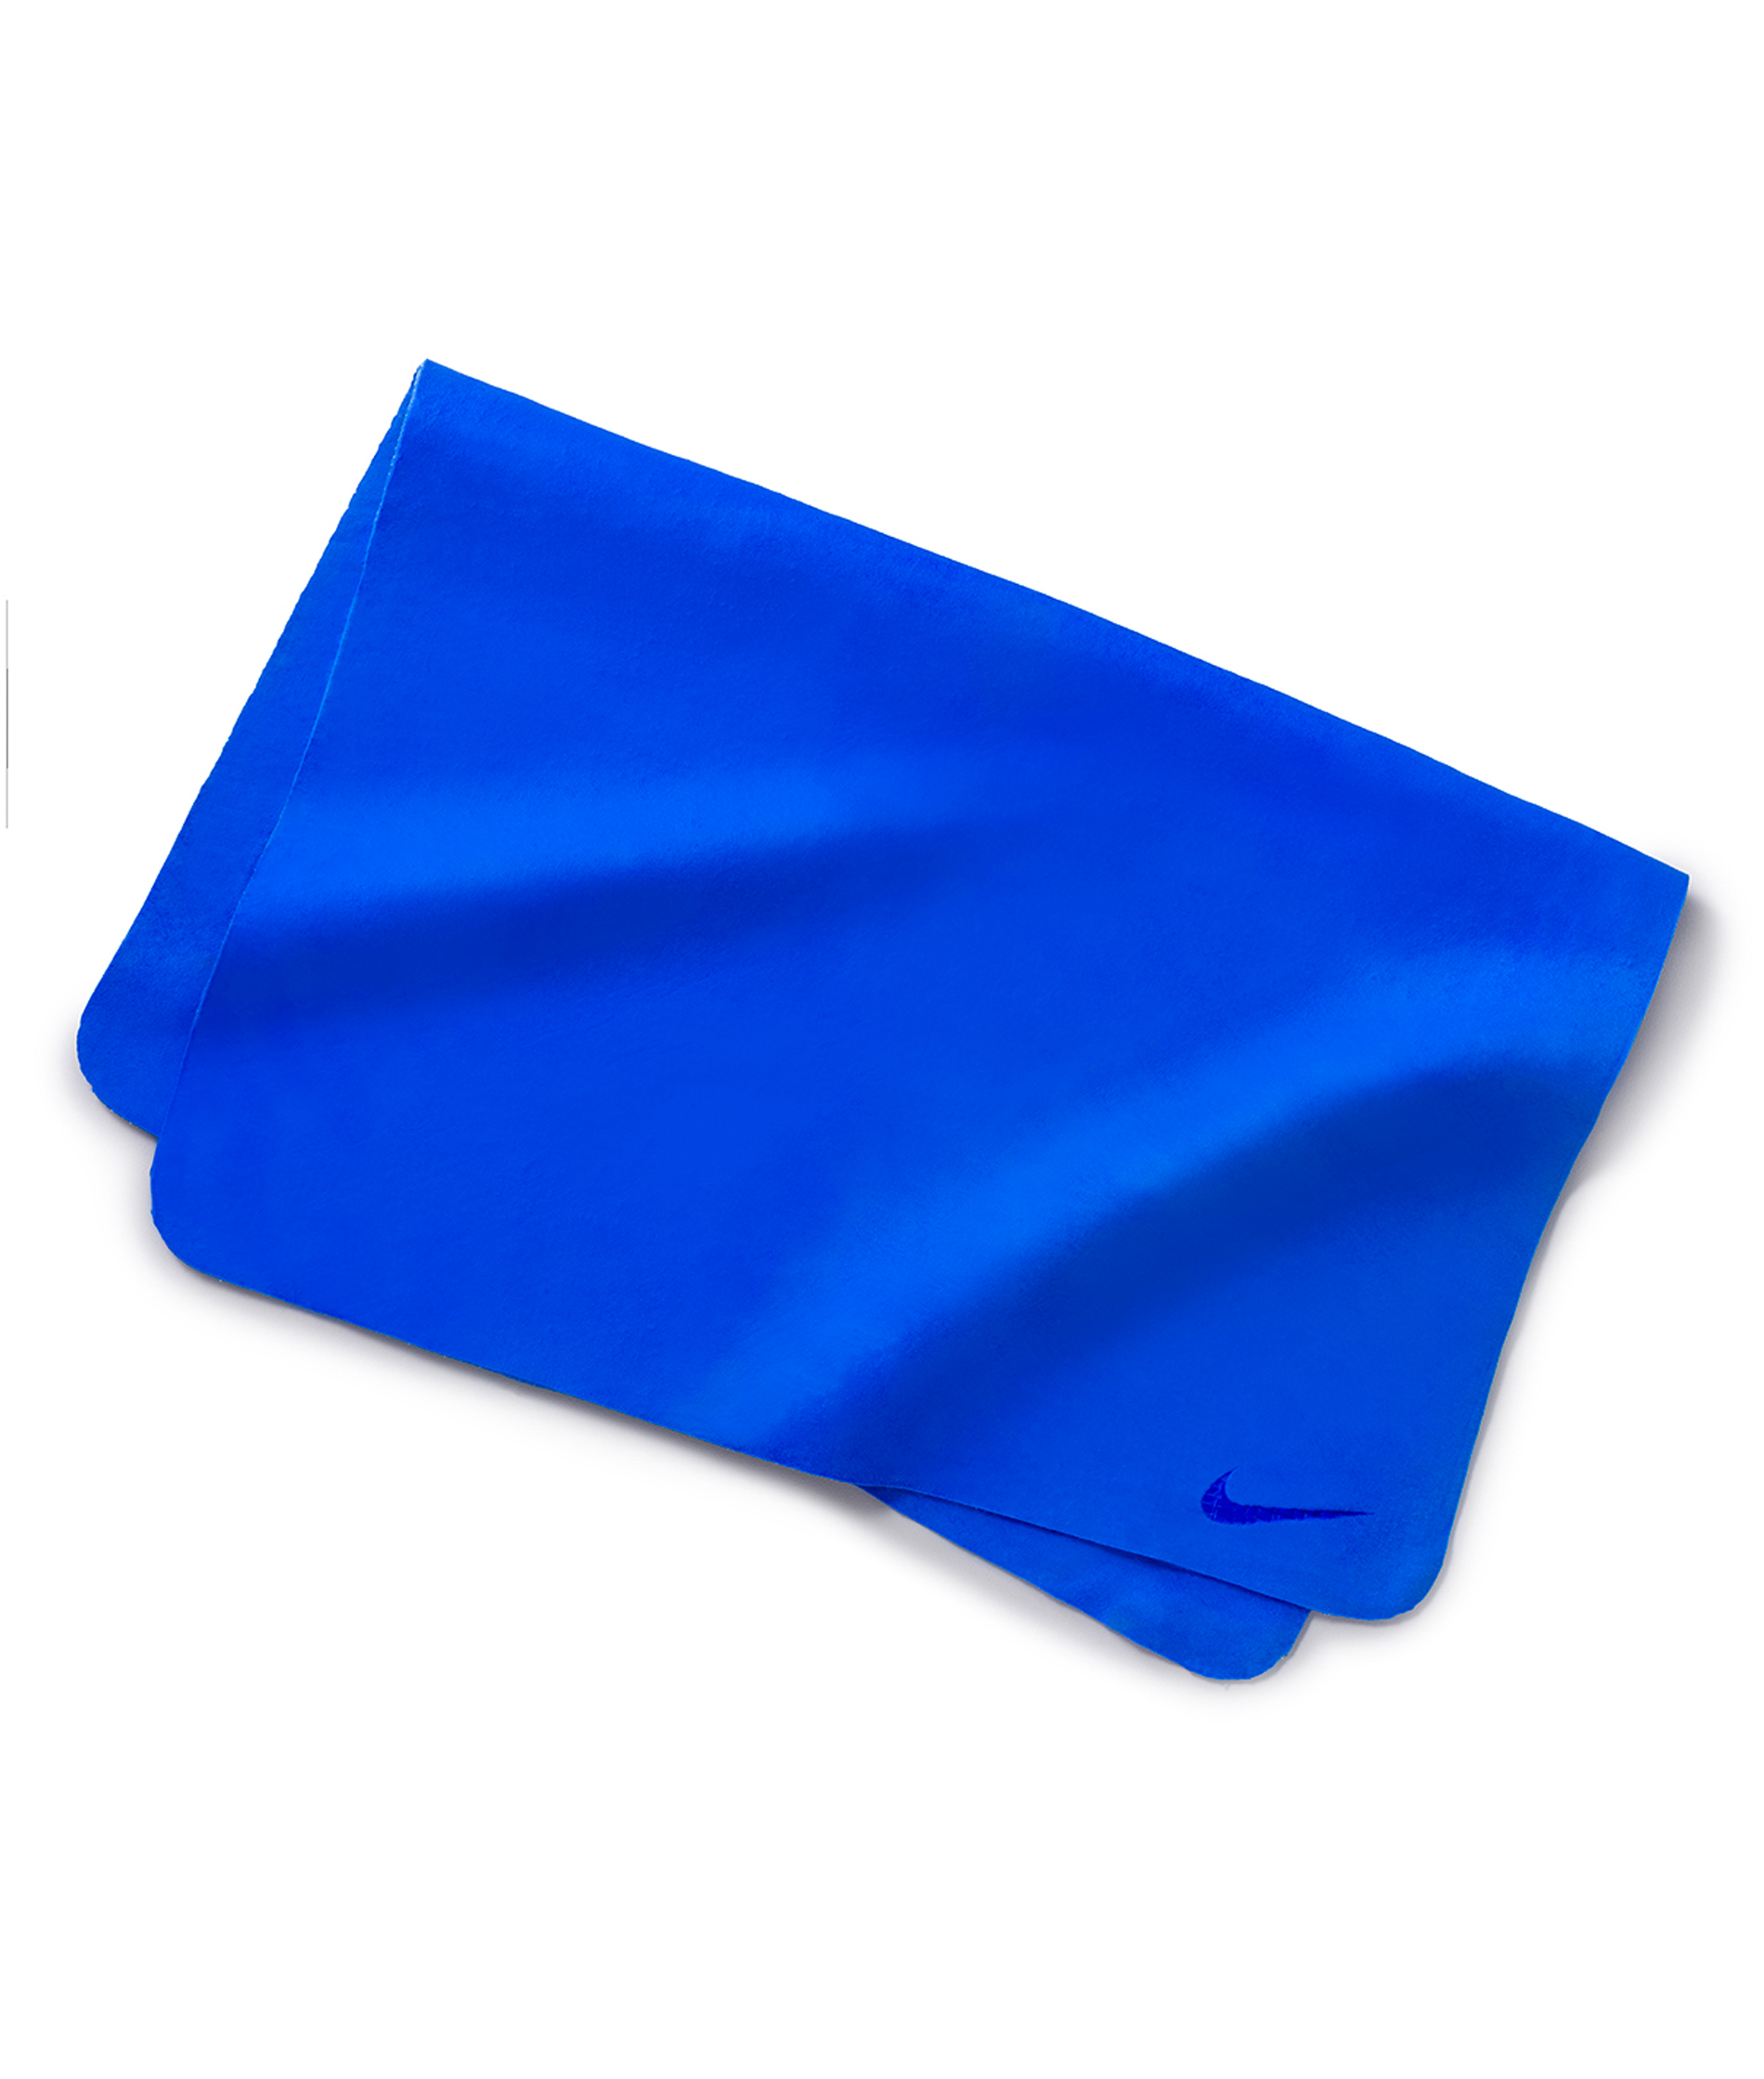 Nike Swim Large Hydro Towel - Blue